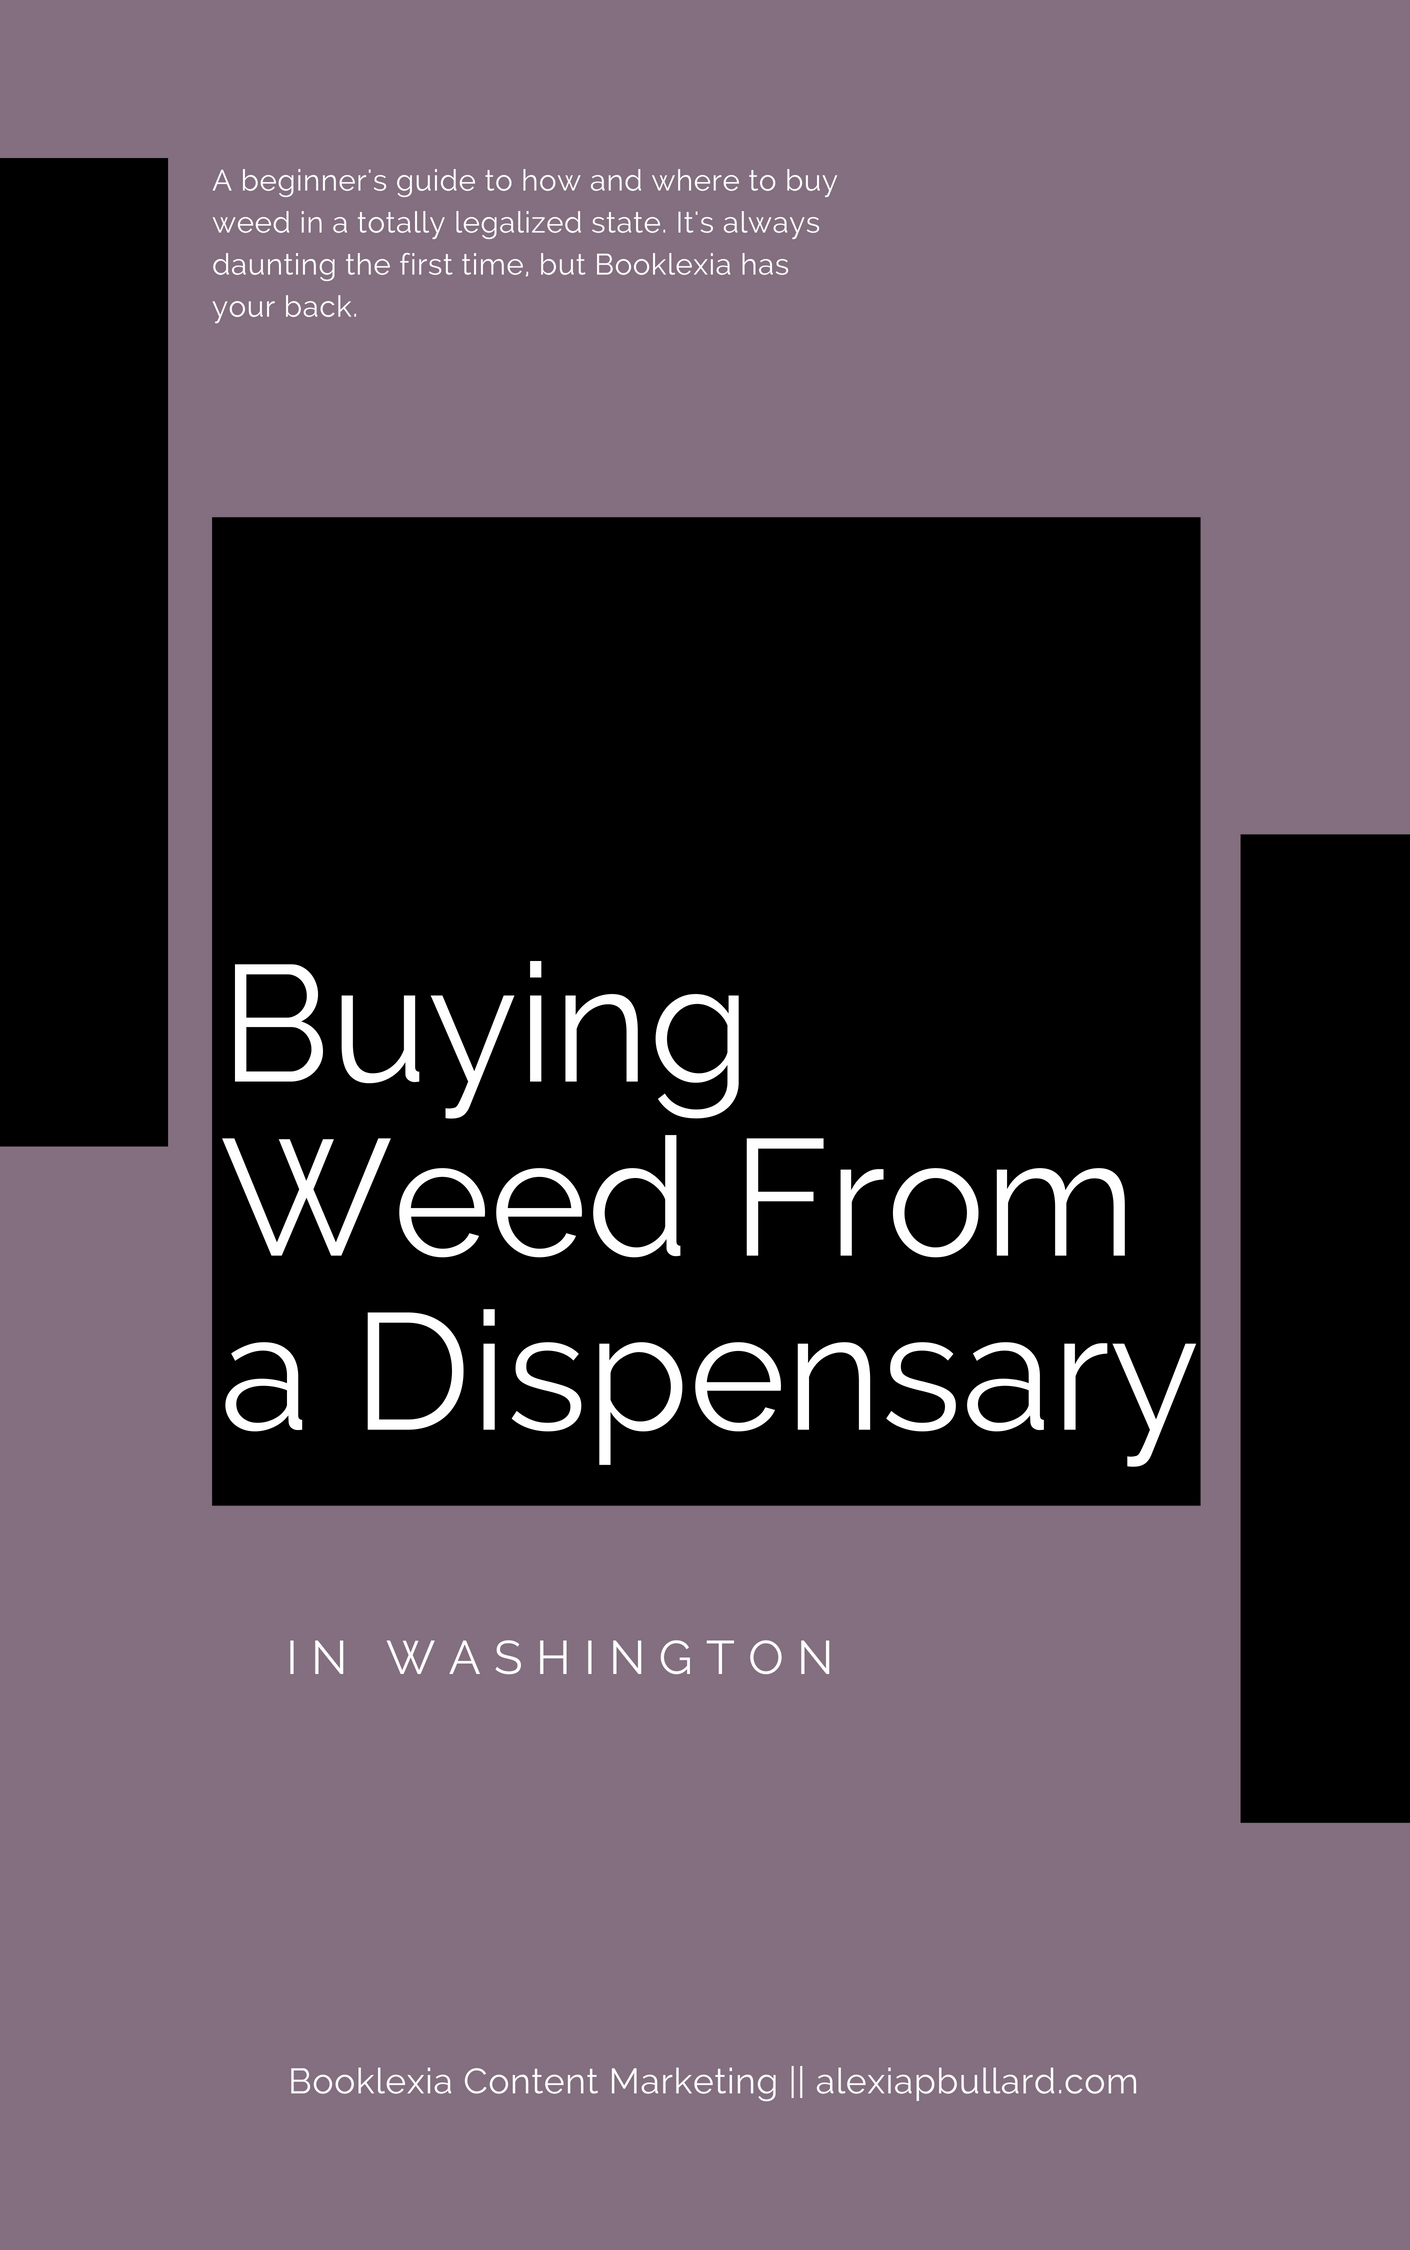 How To: Buying Weed From a Dispensary in Washington || Booklexia Content Marketing